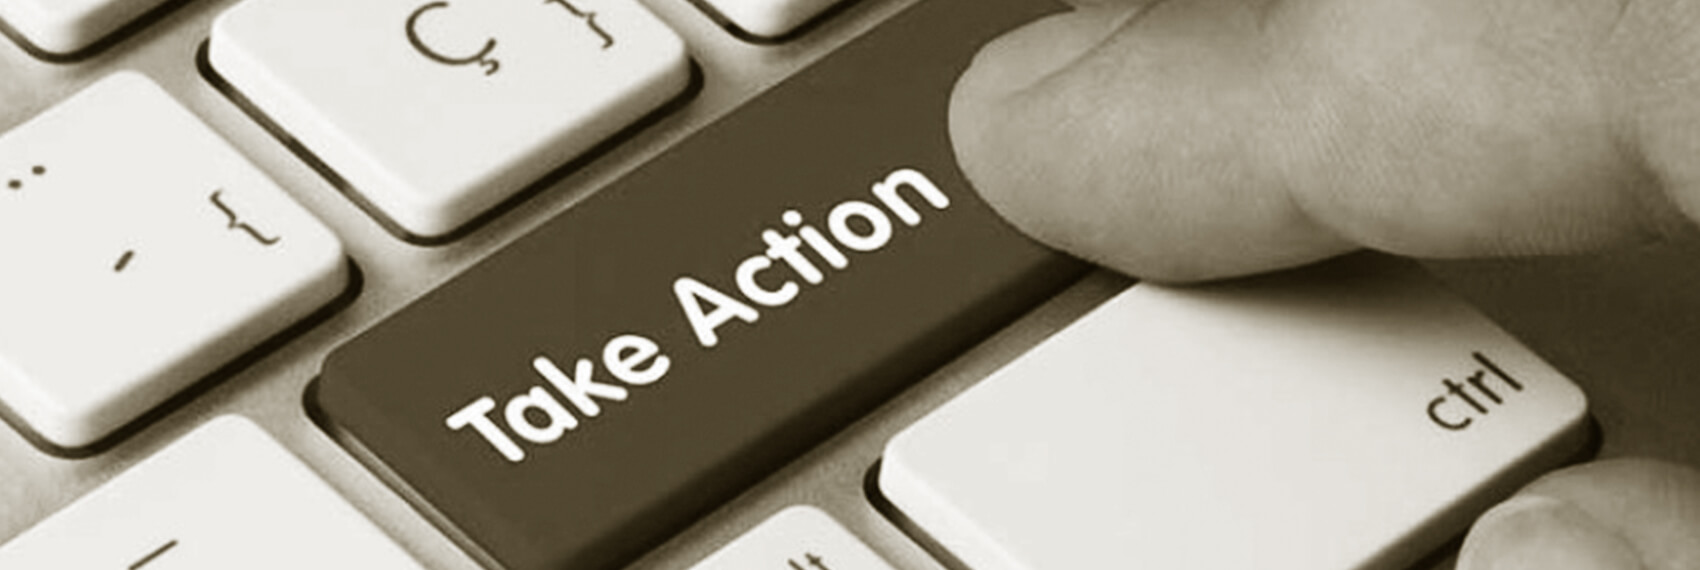 Image result for right actions